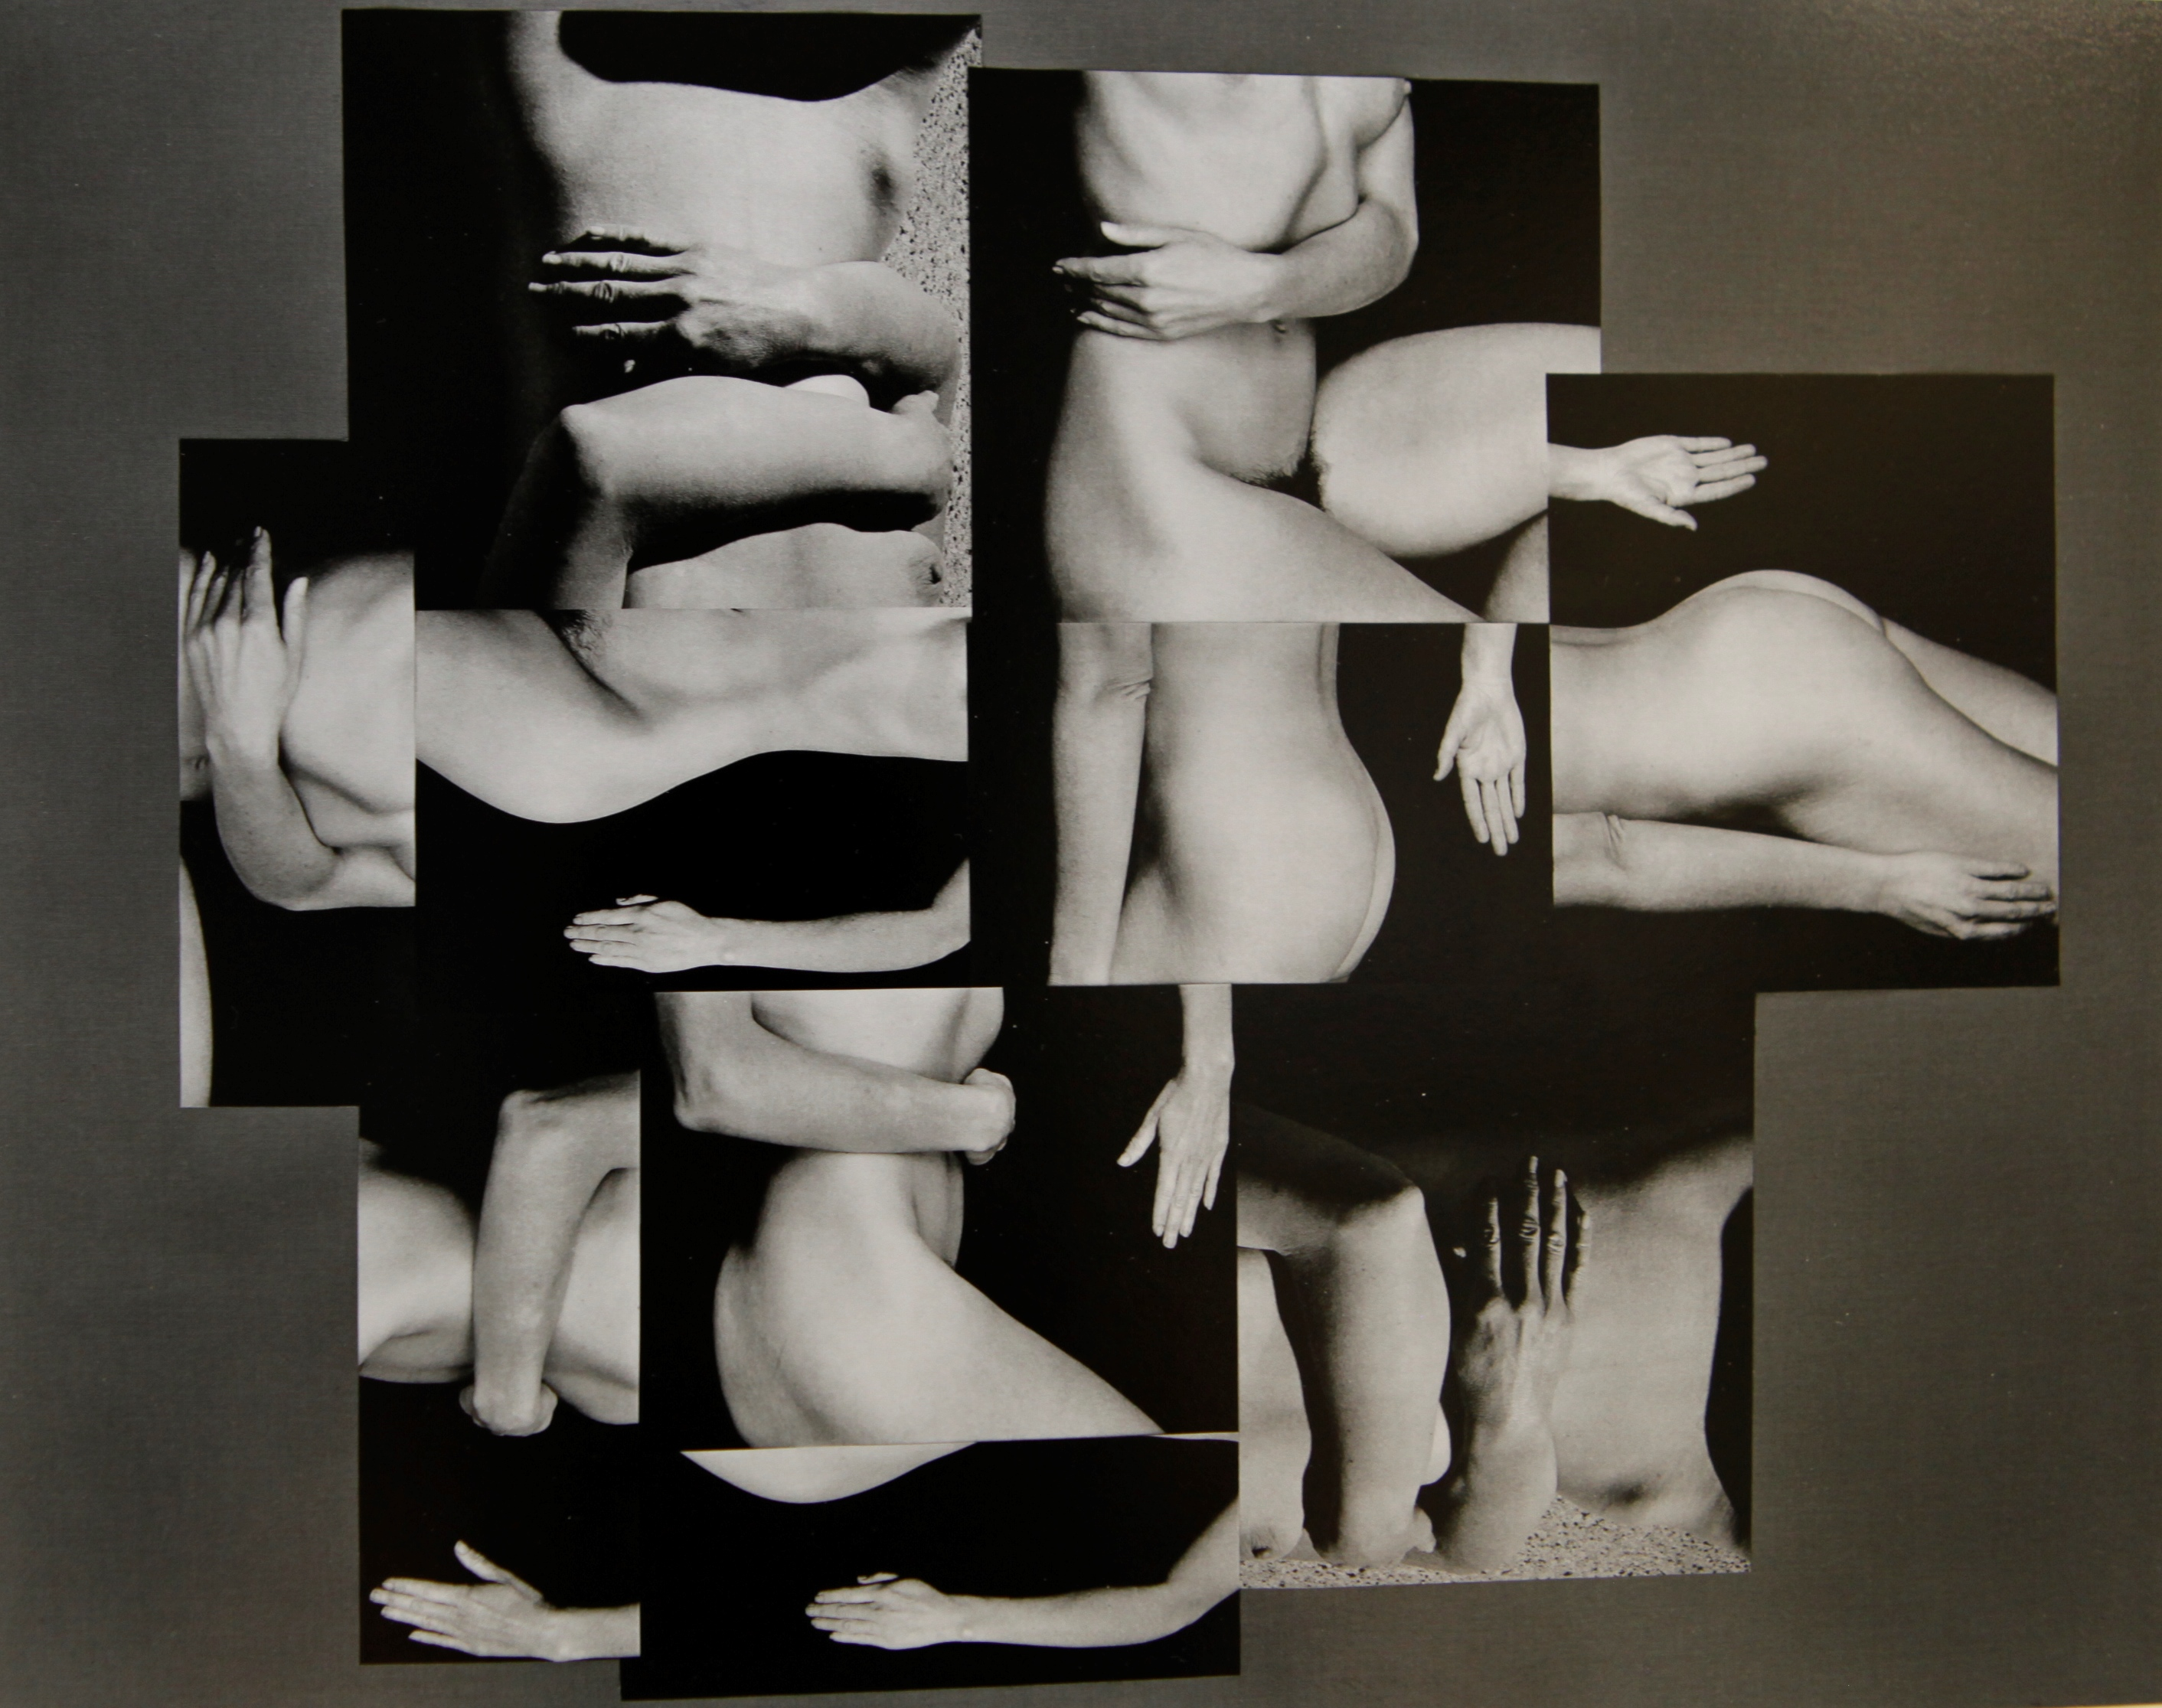 Nude Collage #4